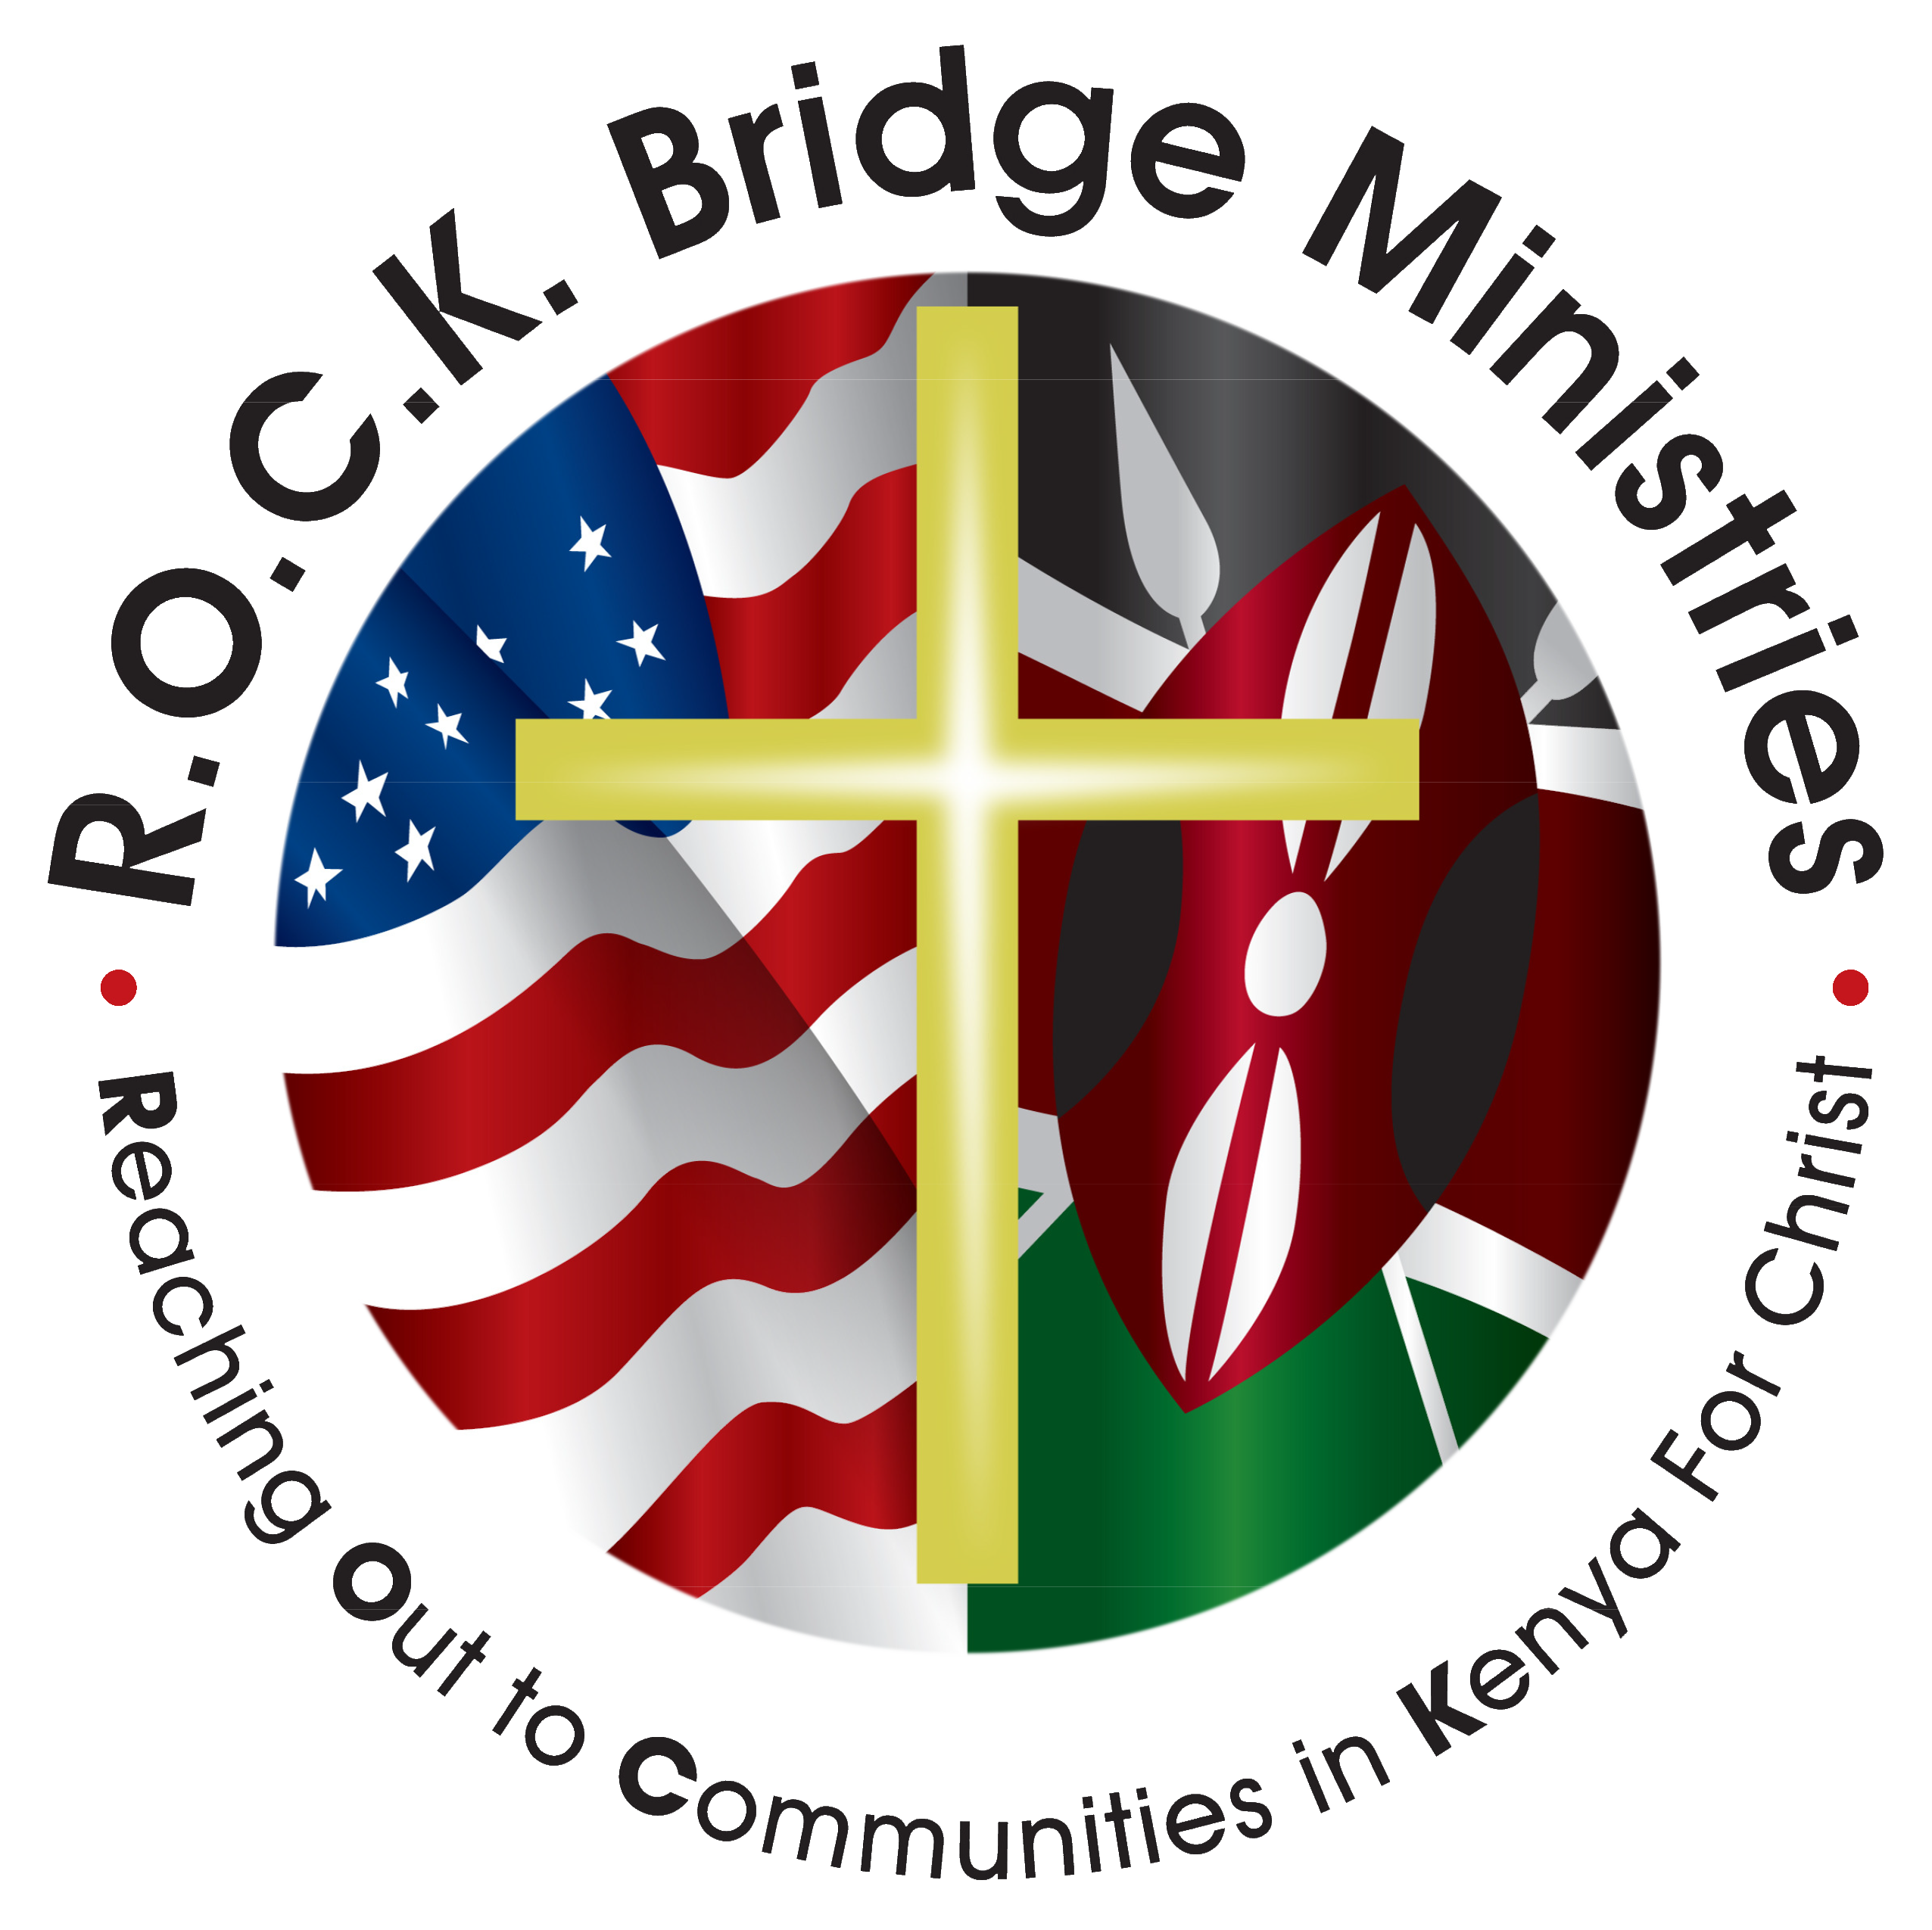 Rockbridge Ministries